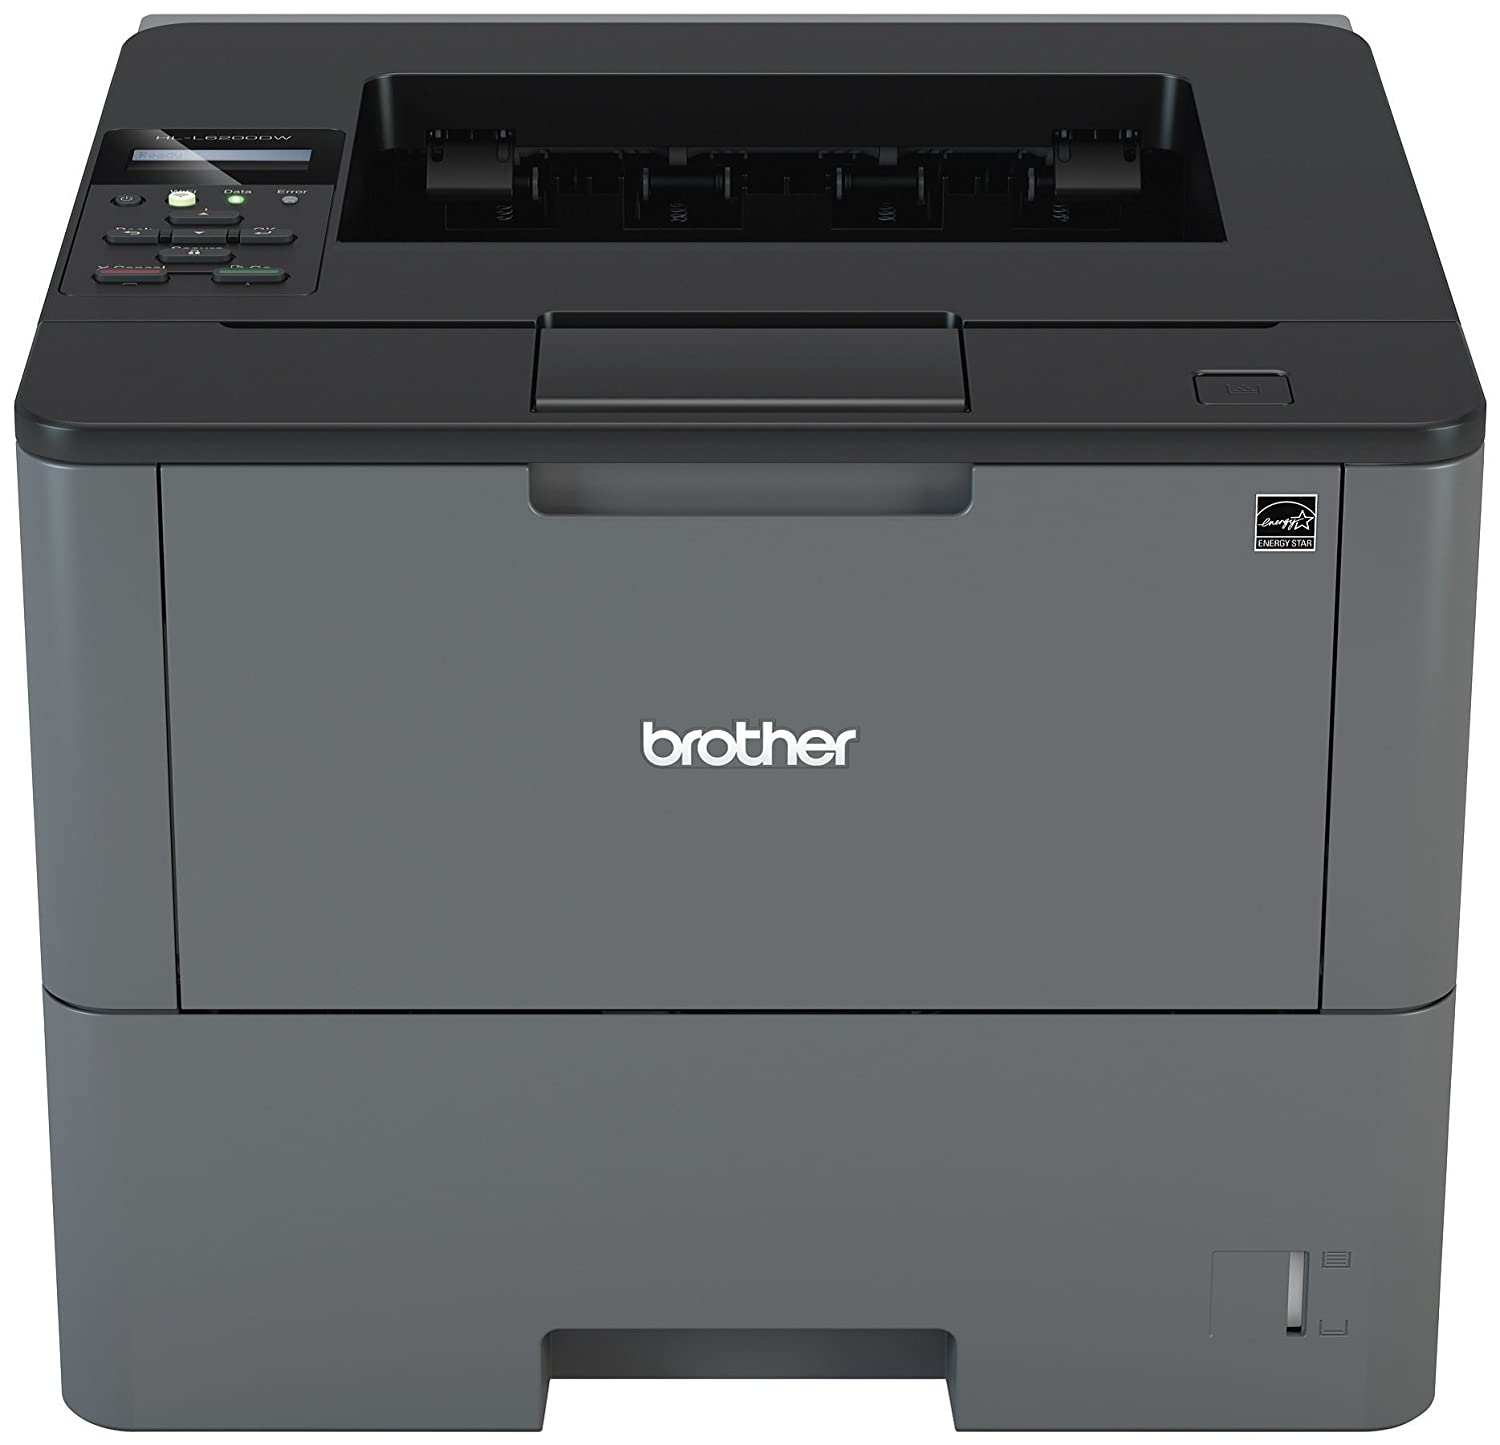 Brother Business Laser Printer with Wireless Networking, Duplex Printing, and Large Paper Capacity (HLL6200DW)